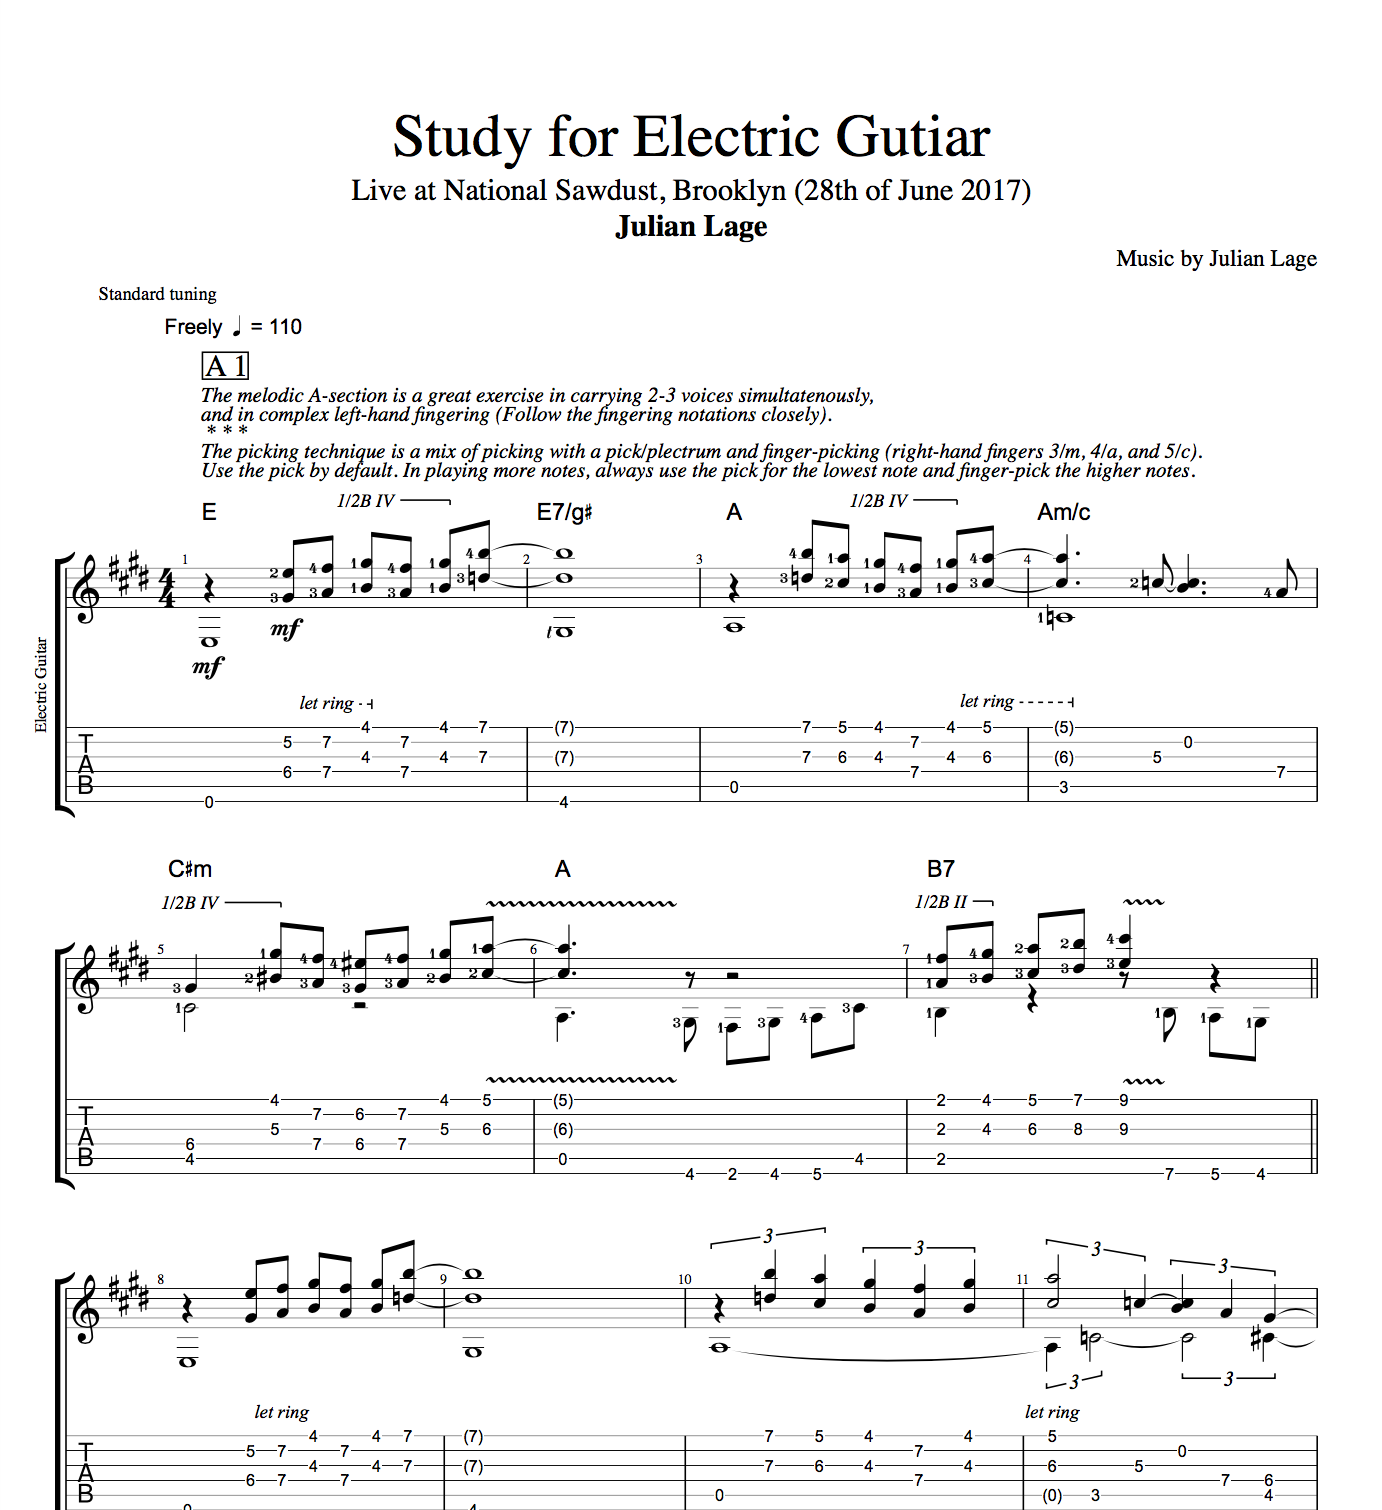 Opm guitar chords images guitar chords examples torete guitar chords choice image guitar chords examples g7m chord guitar gallery guitar chords examples persian hexwebz Gallery